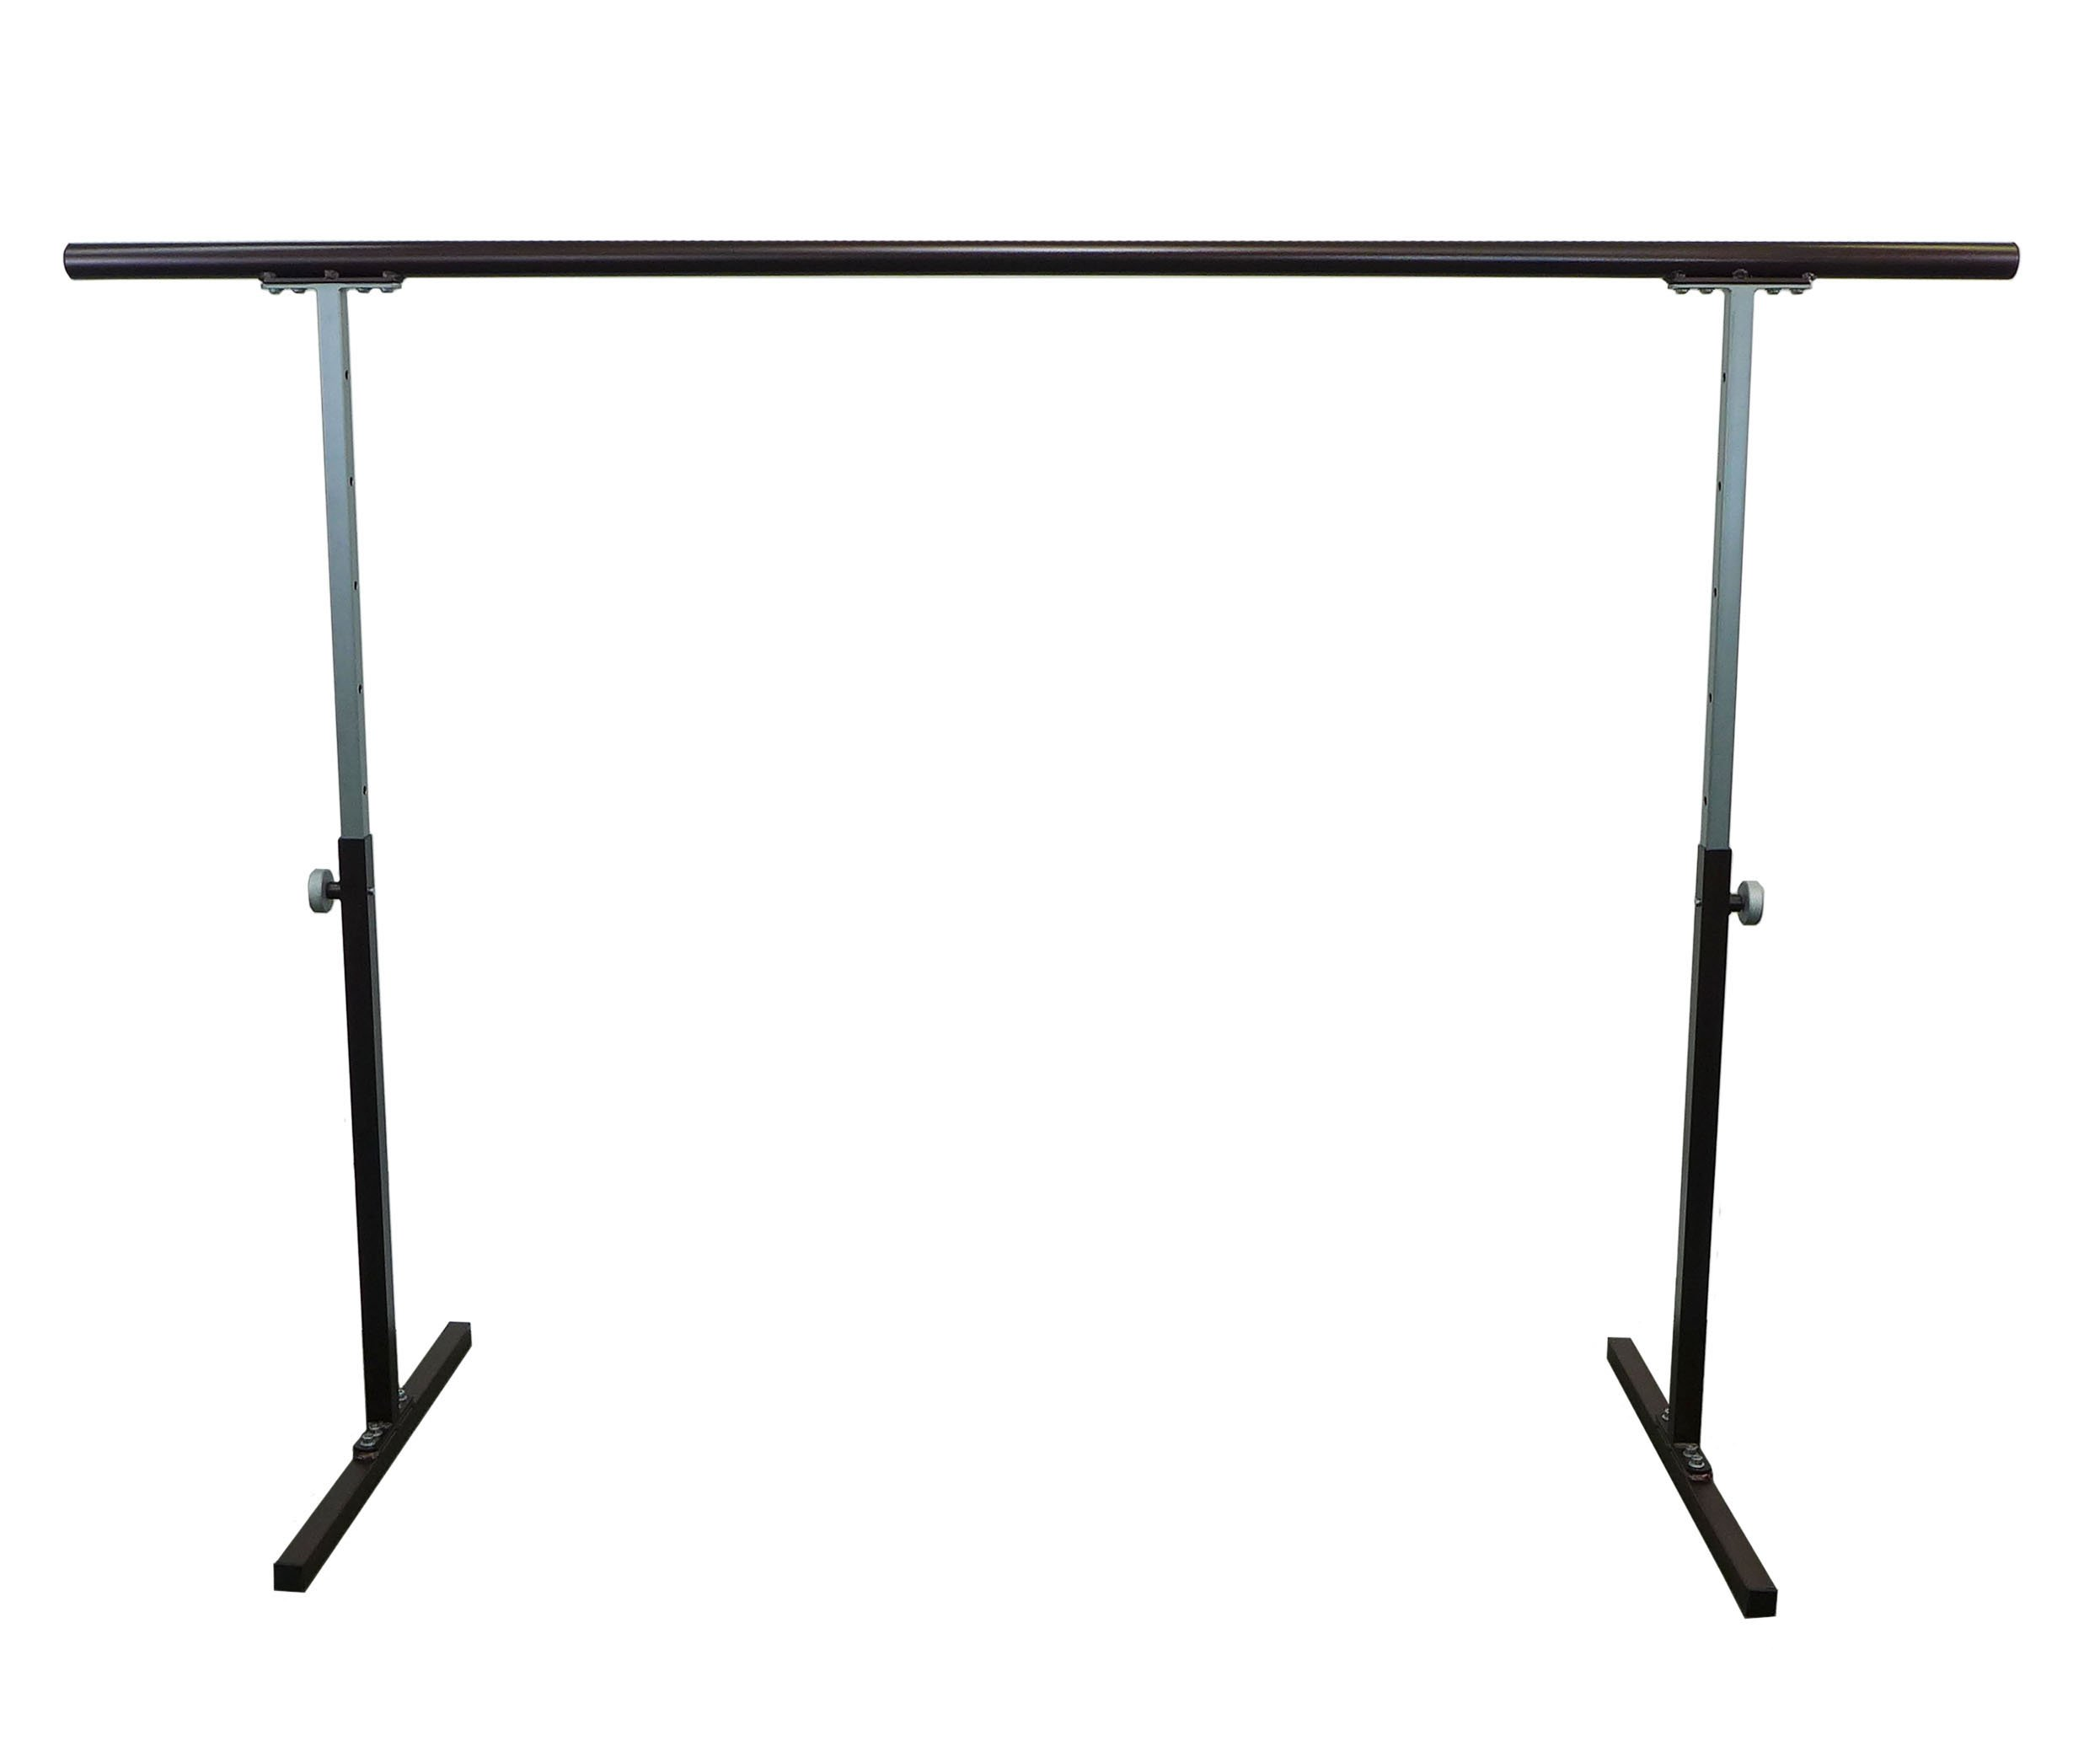 Softtouch Ballet Barre 6.5ft Portable Dance Bar - Adjustable Height 31'' - 49'' - Freestanding Stretch Barre 80''